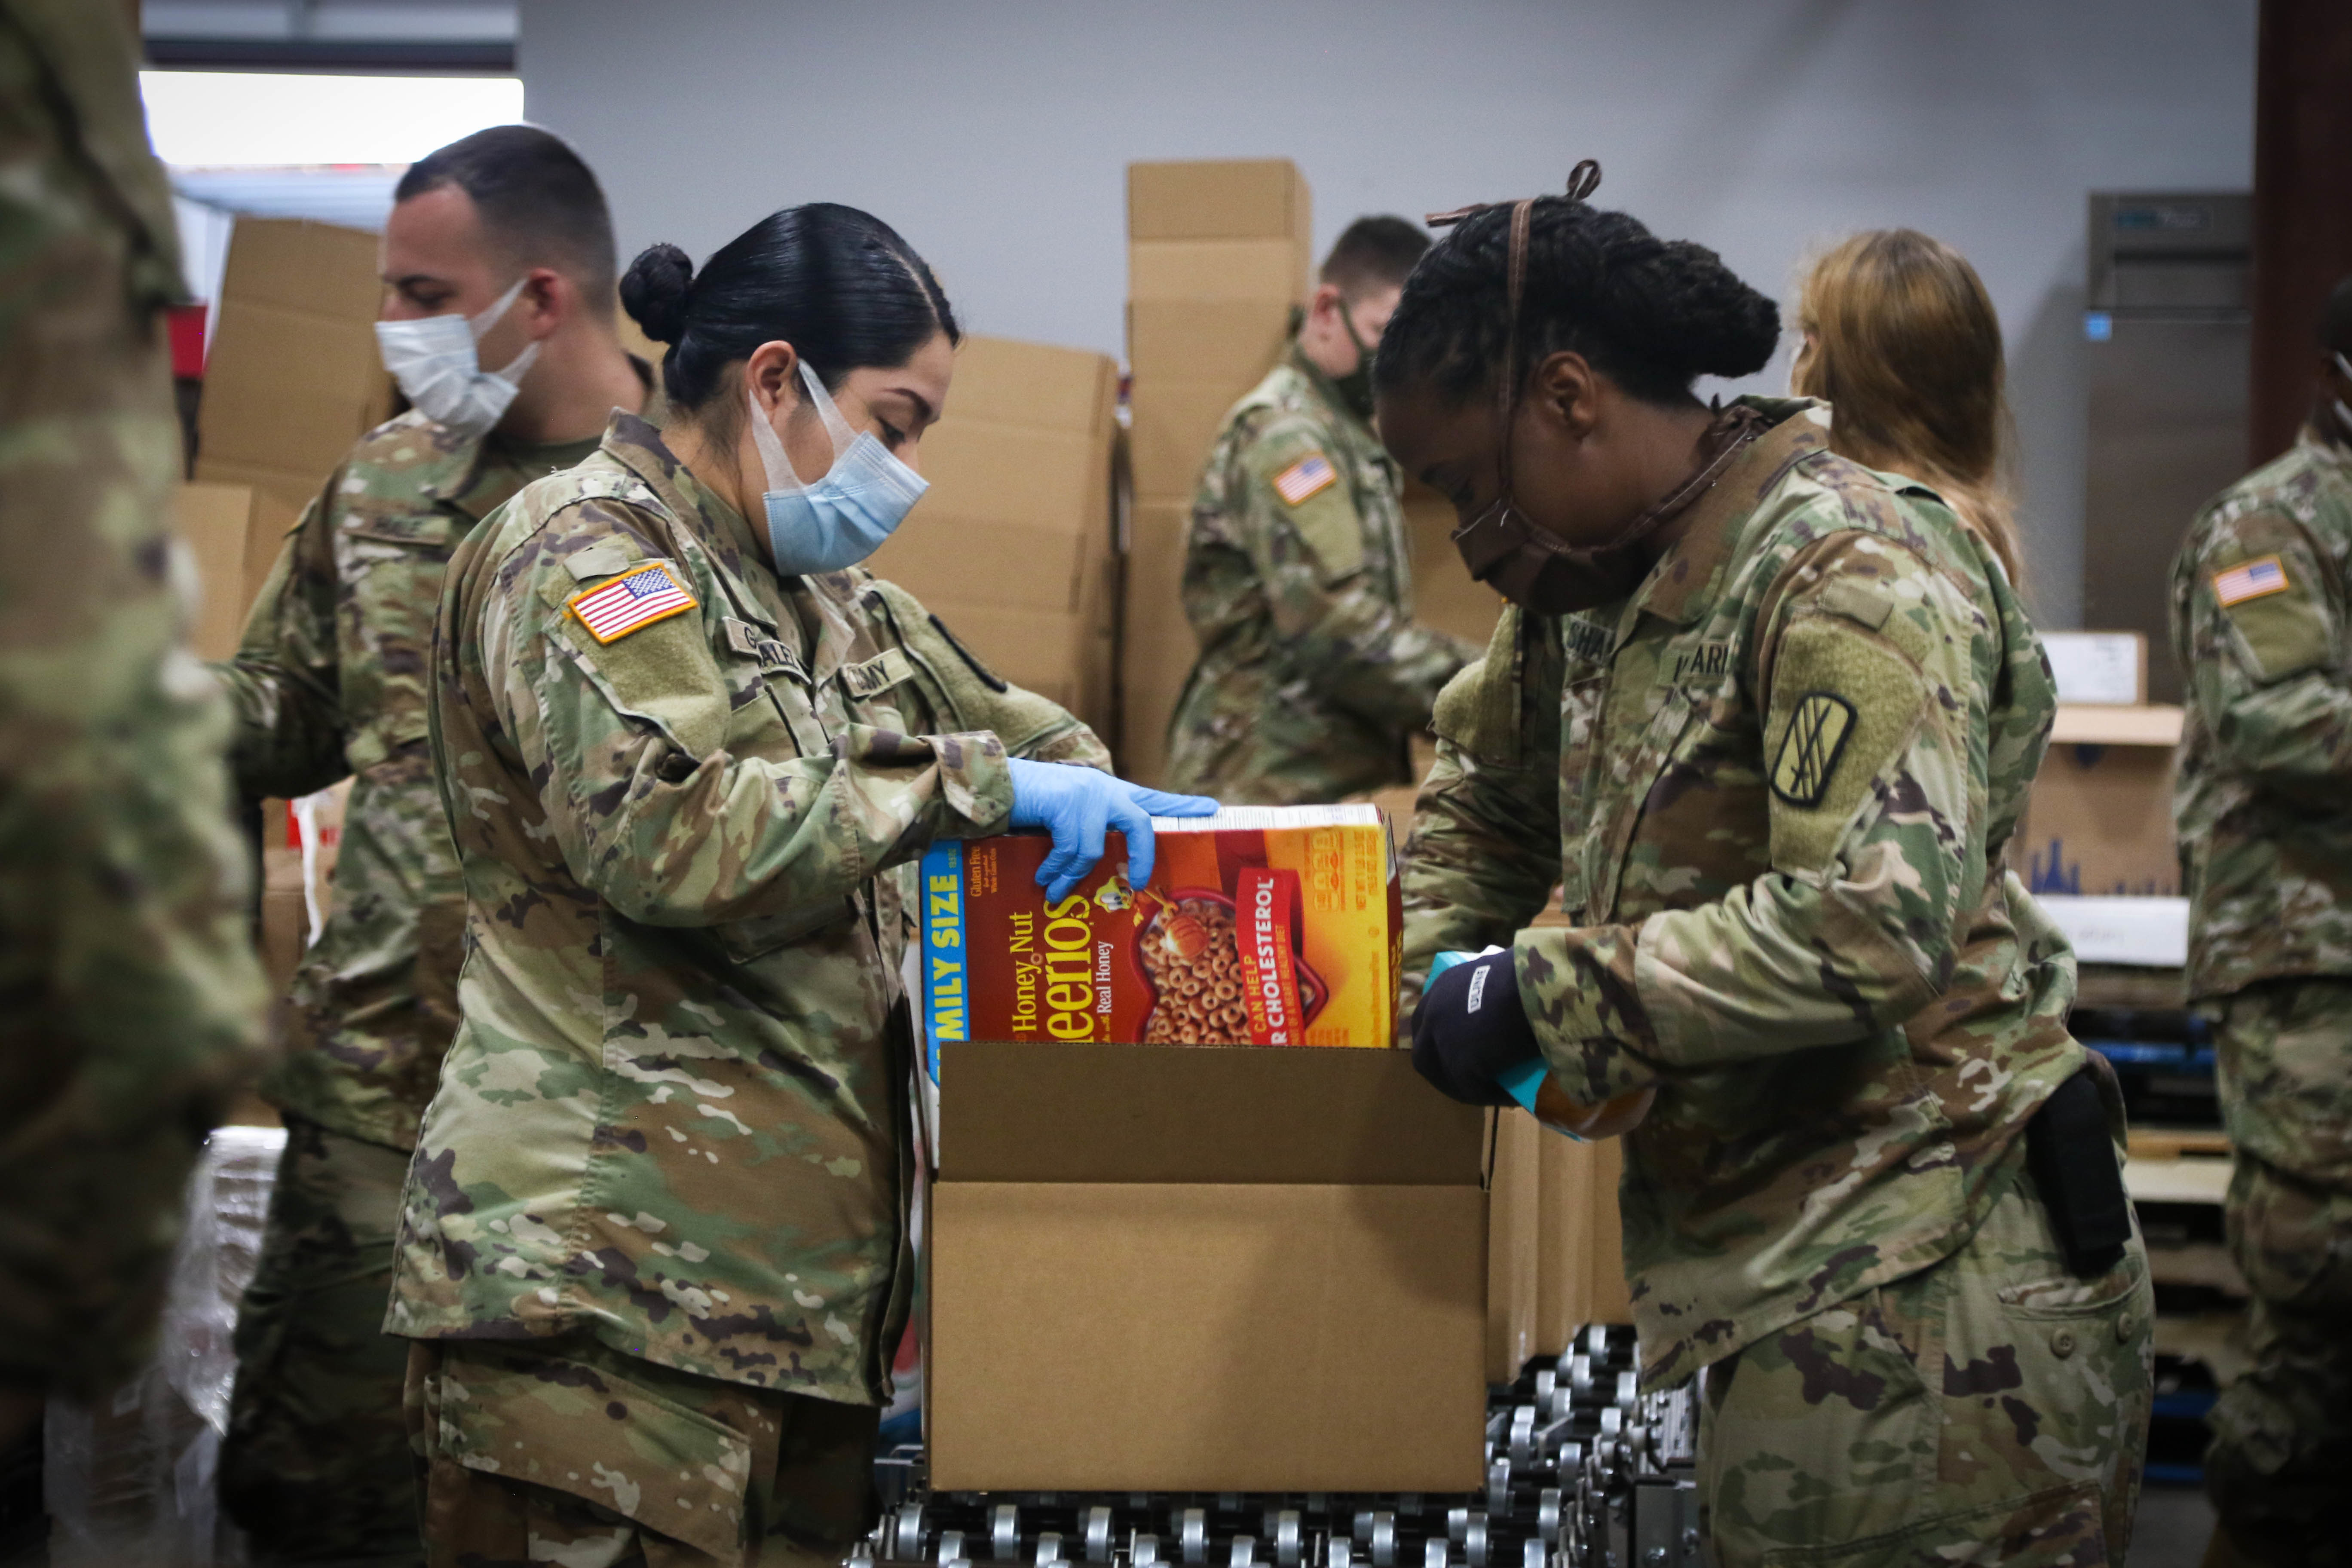 North Carolina Army National Guard help supports COVID-19 relief efforts